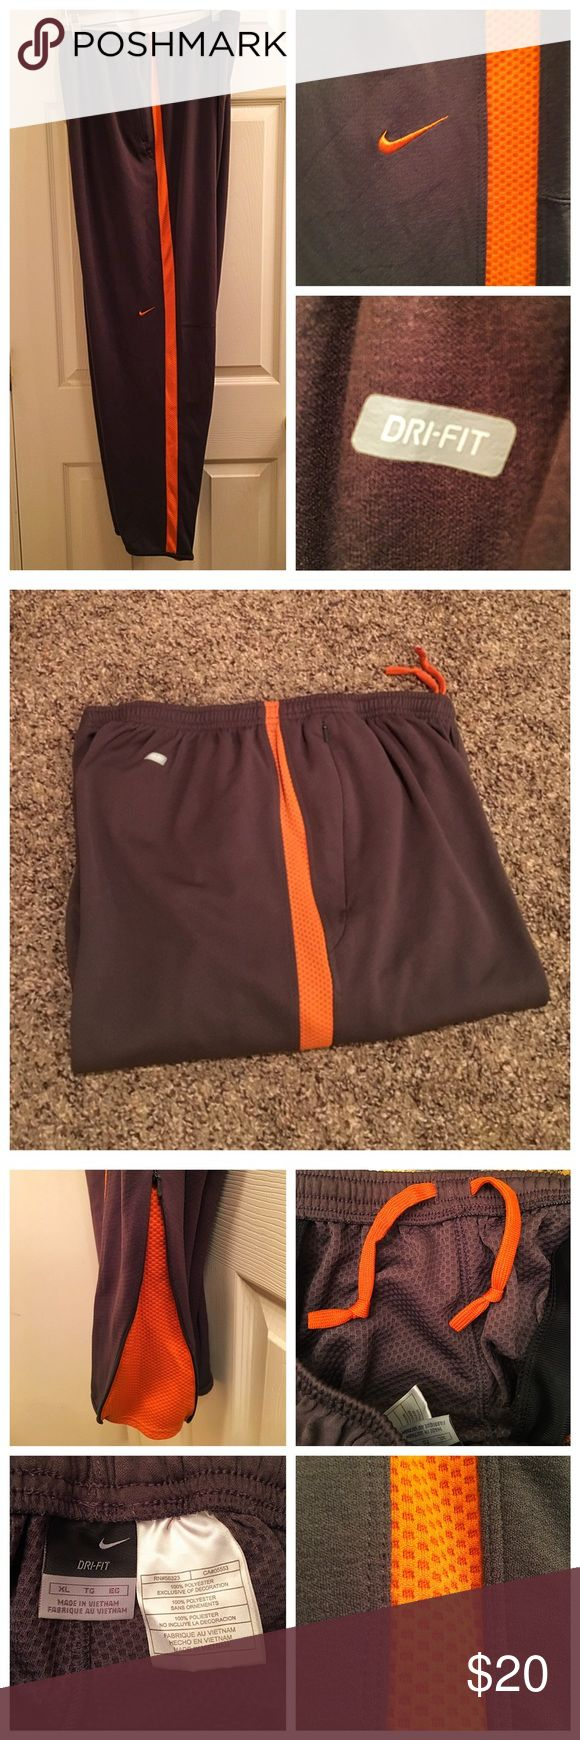 Nike Dri-Fit Men's Workout Pants Essential gym to street workout pants for men.  In stylish orange and brown color with zippered pockets and drawstring waist for comfort.  Leg bottoms also can be zippered open for extra legroom. Nike Dri-Fit Pants Sweatpants & Joggers